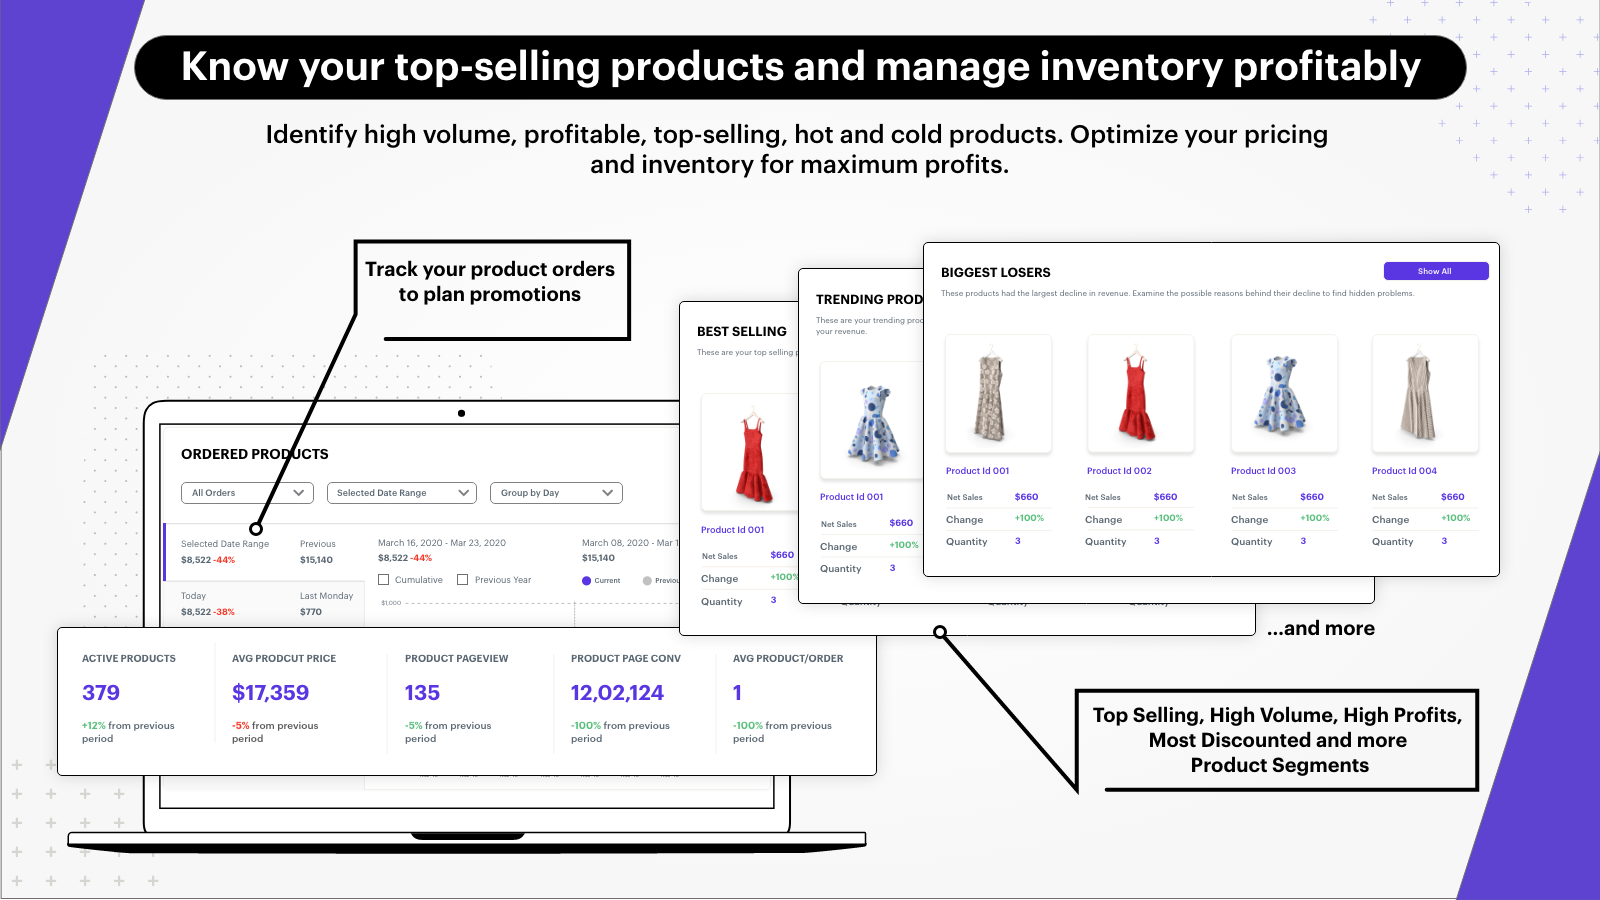 product segments for better inventory management